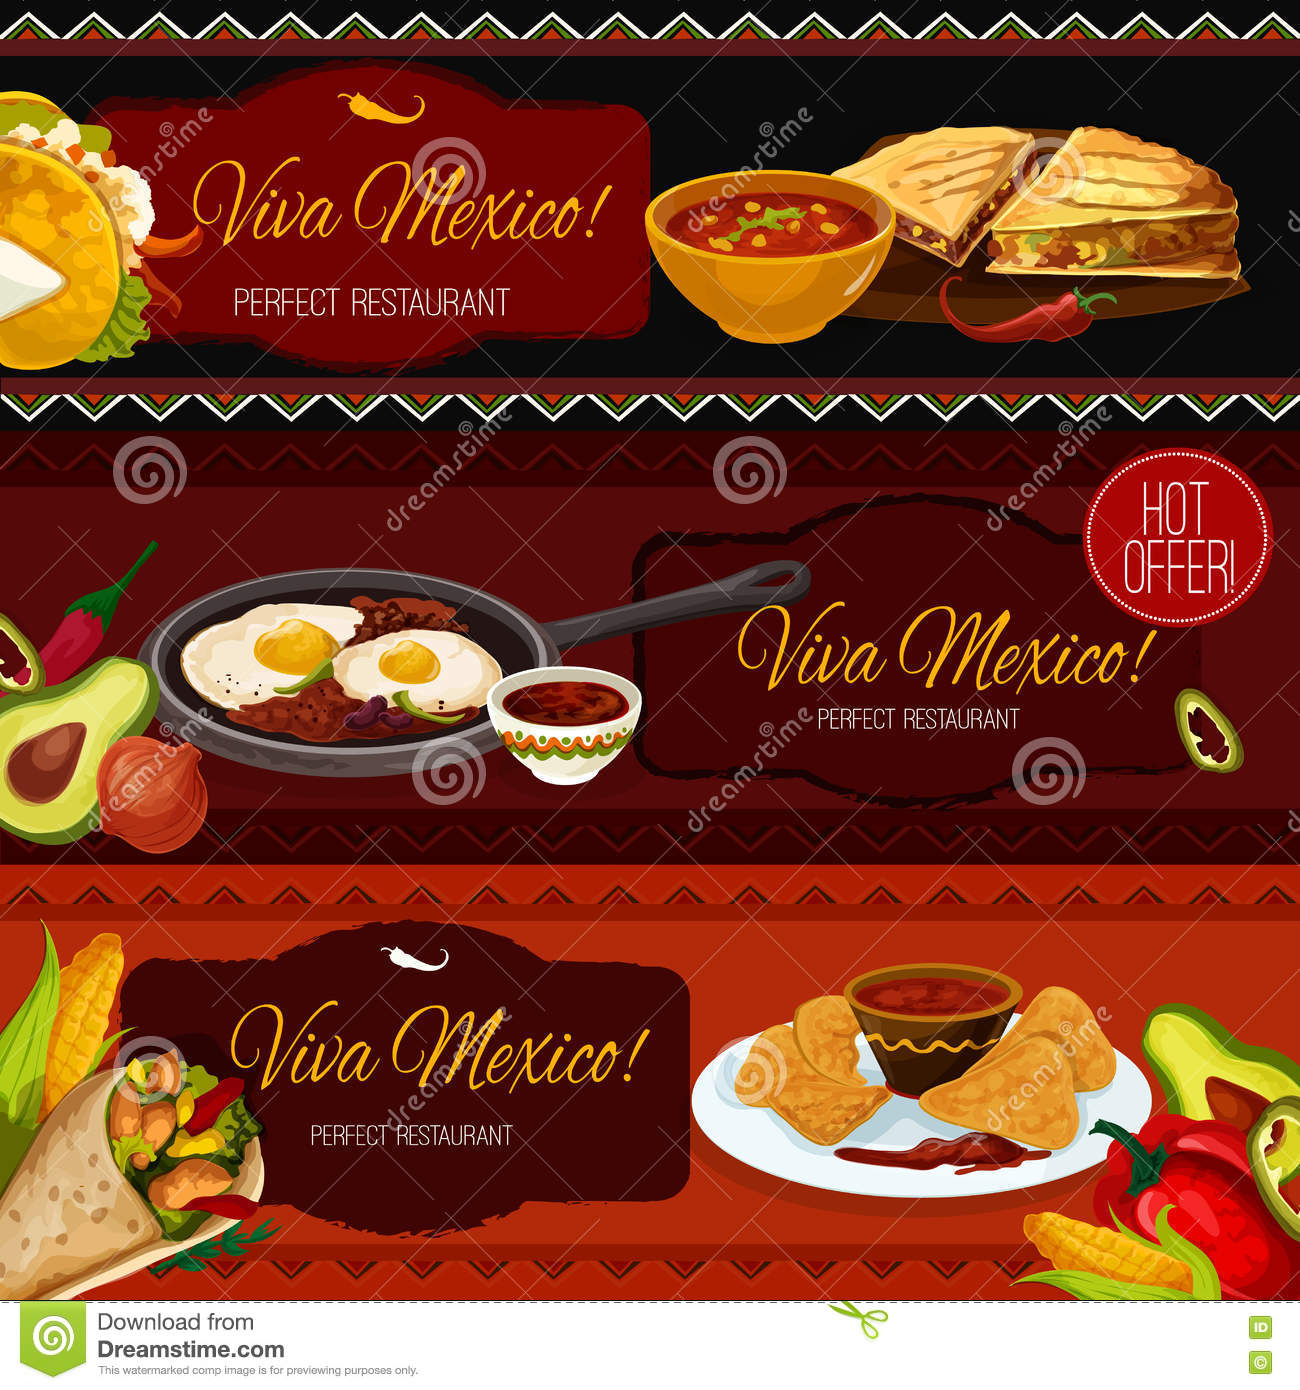 restaurant fresh mexican food menu promo sign in sketch style with